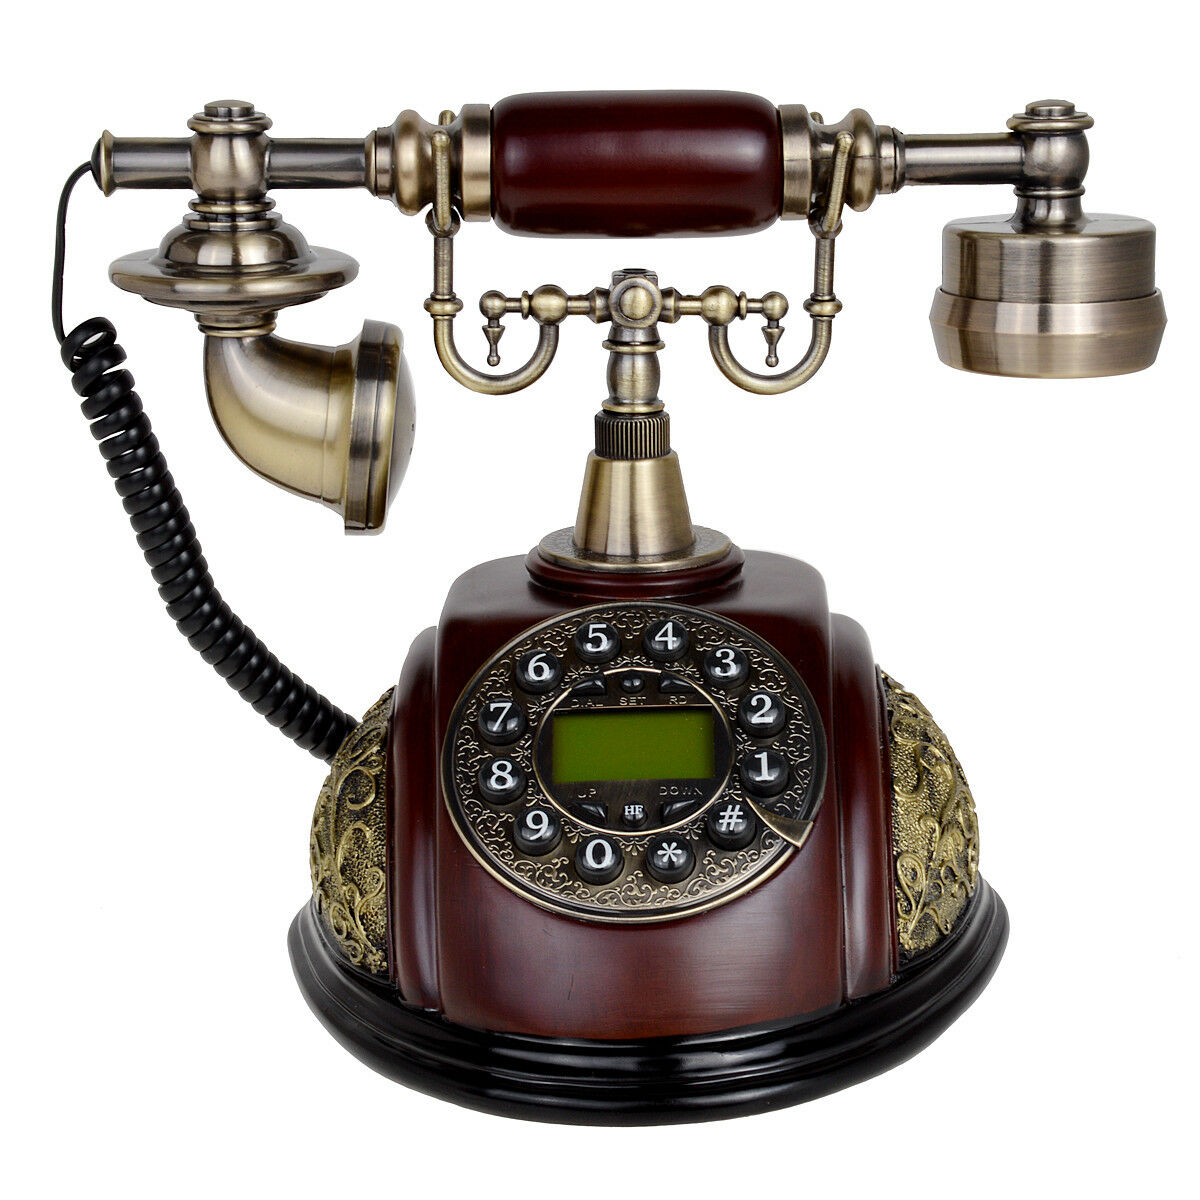 European Style Antique Corded Telephone Retro Vintage home office Desk Phone - European Style Antique Corded Telephone Retro Vintage Home Office